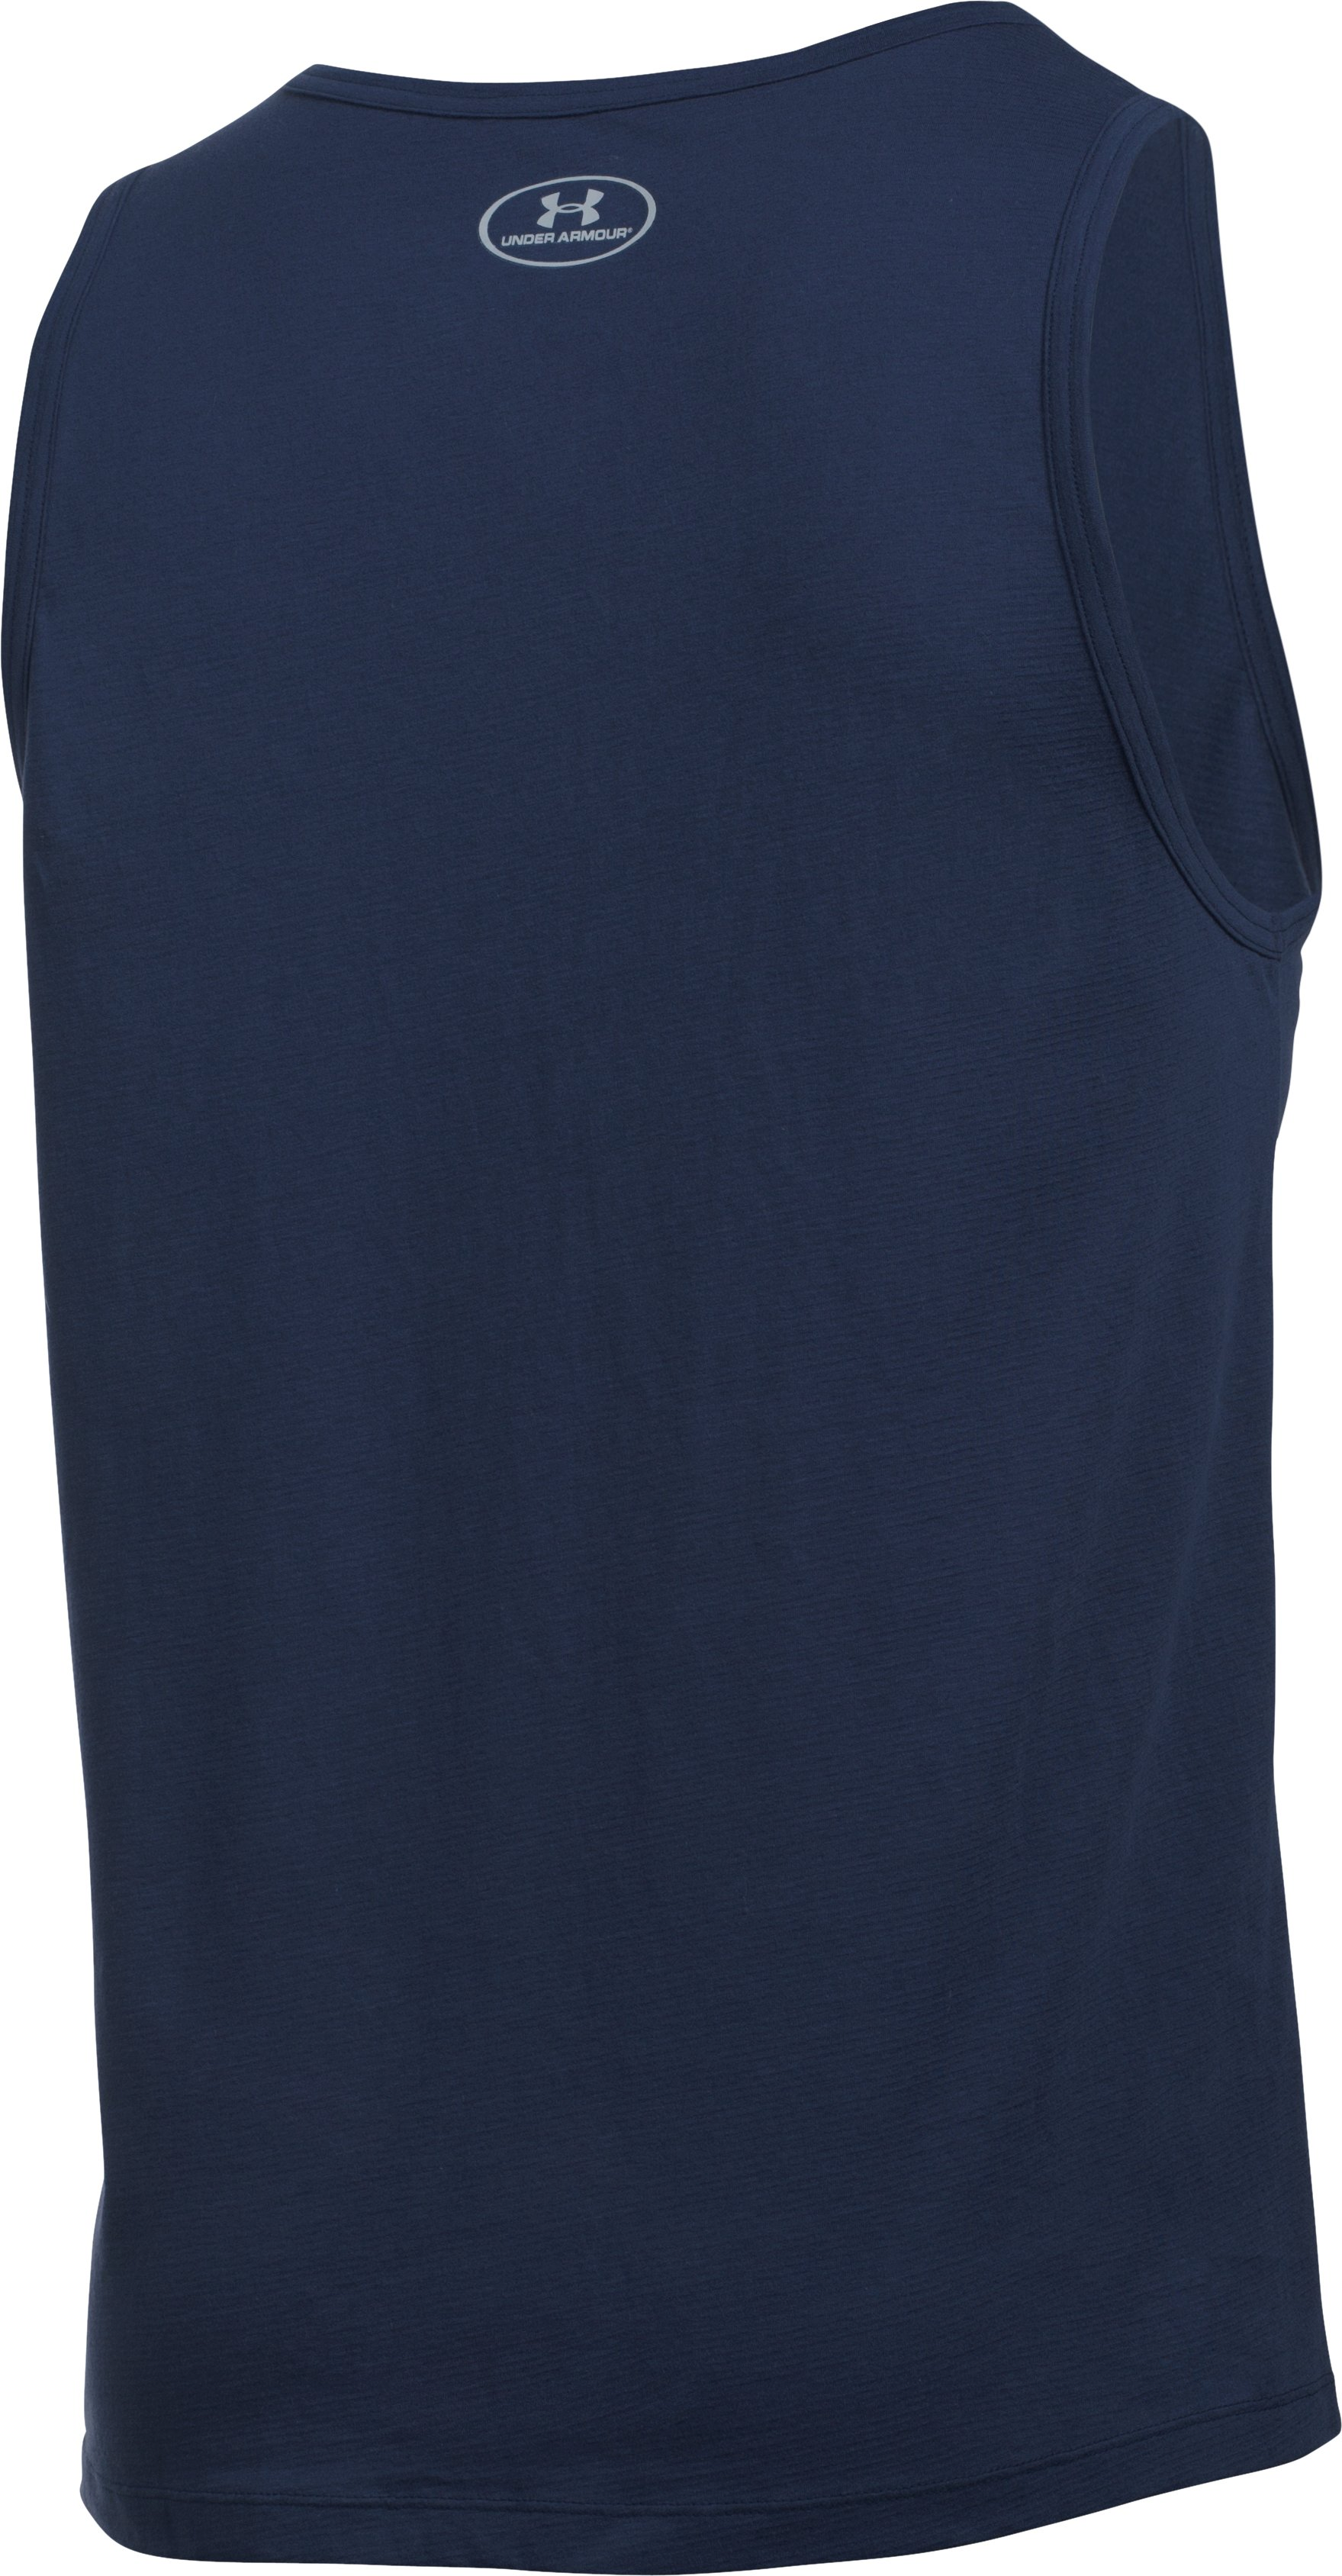 Men's Charged Cotton® Tank, Midnight Navy